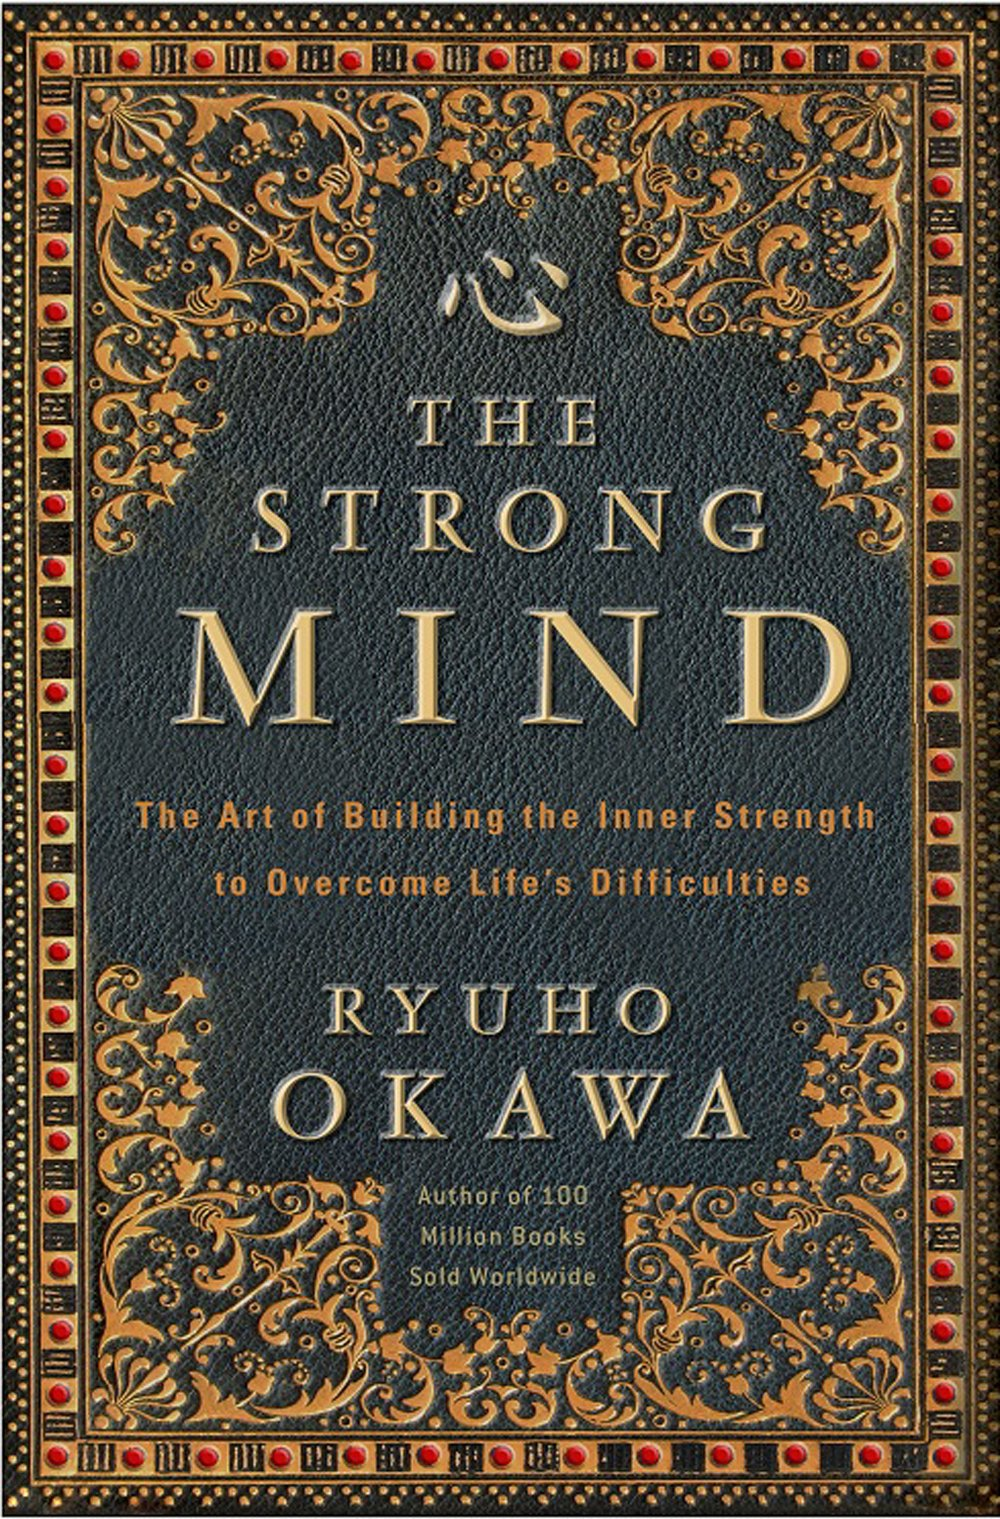 The Strong Mind: The Art of Building the Inner Strength to Overcome Life's Difficulties pdf